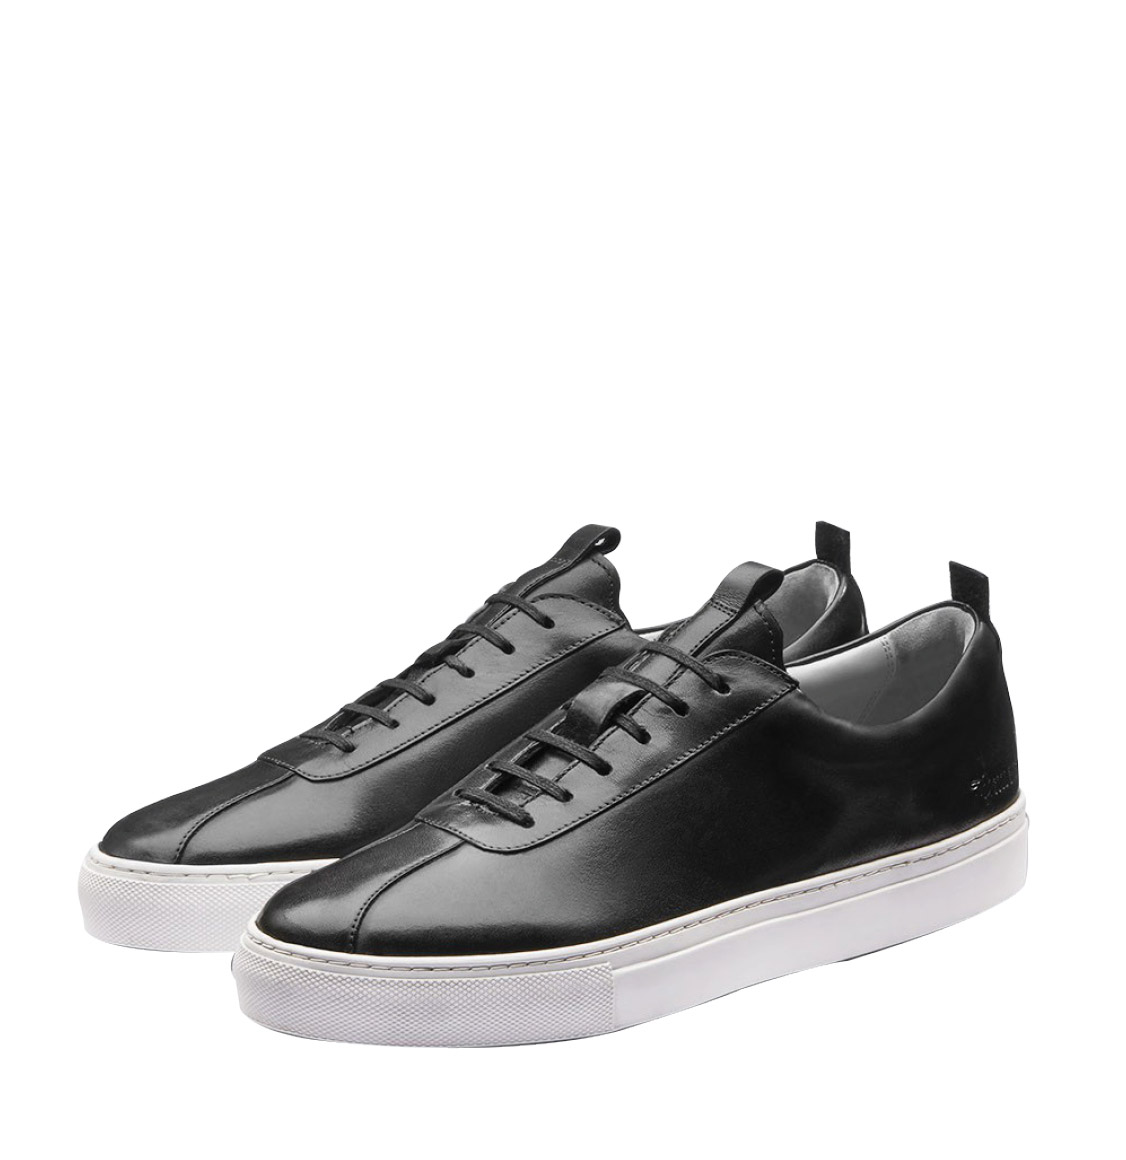 Grenson Black Leather Oxford Sneaker